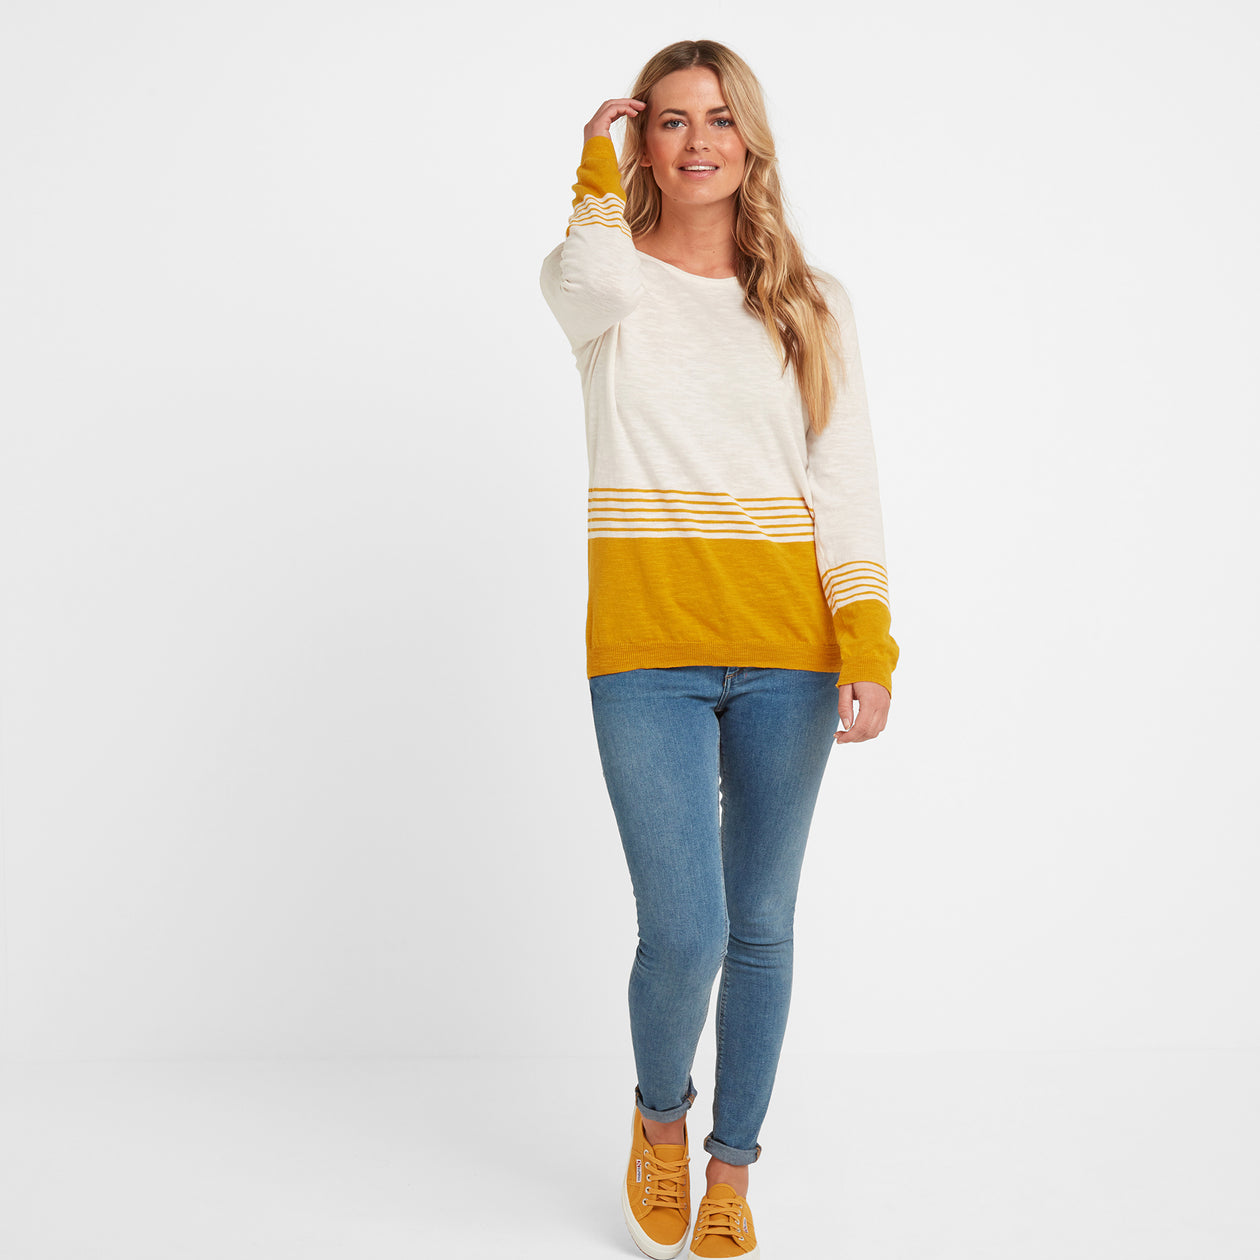 Dolly Womens Stripe Jumper - Snow White/Golden Yellow image 4